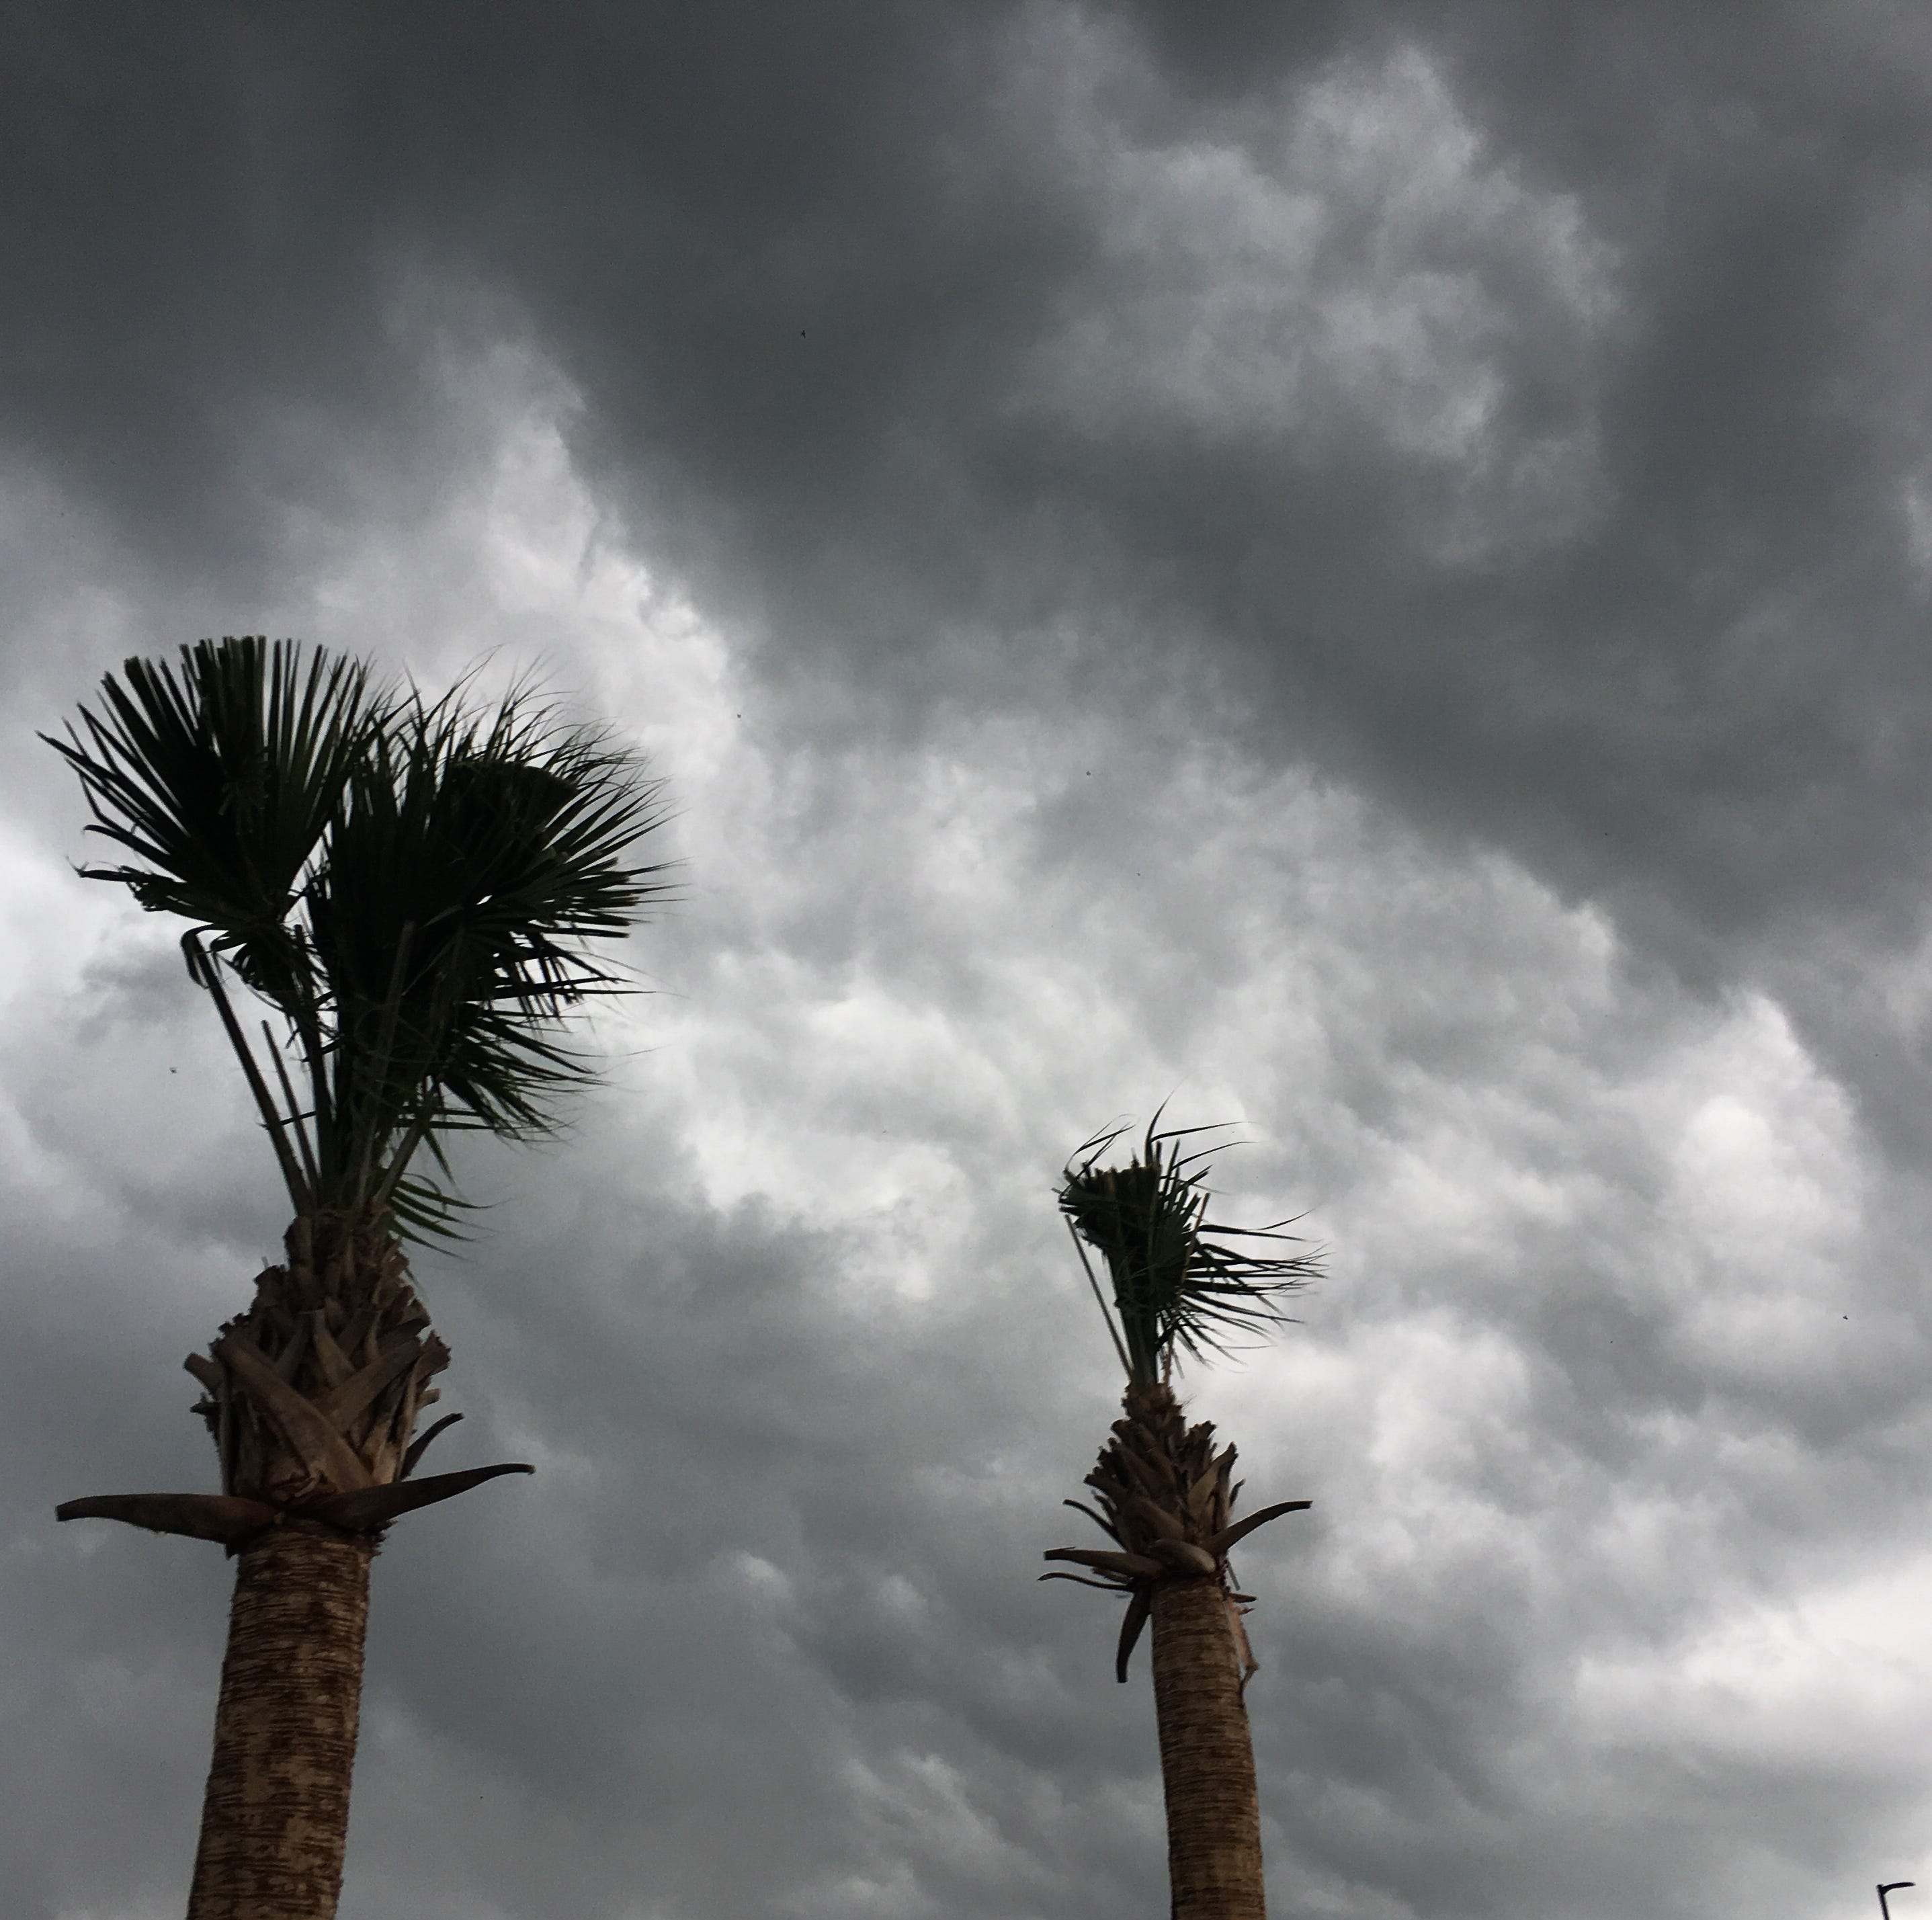 Stormy weather moves across Space Coast, bringing lightning, heavy rain